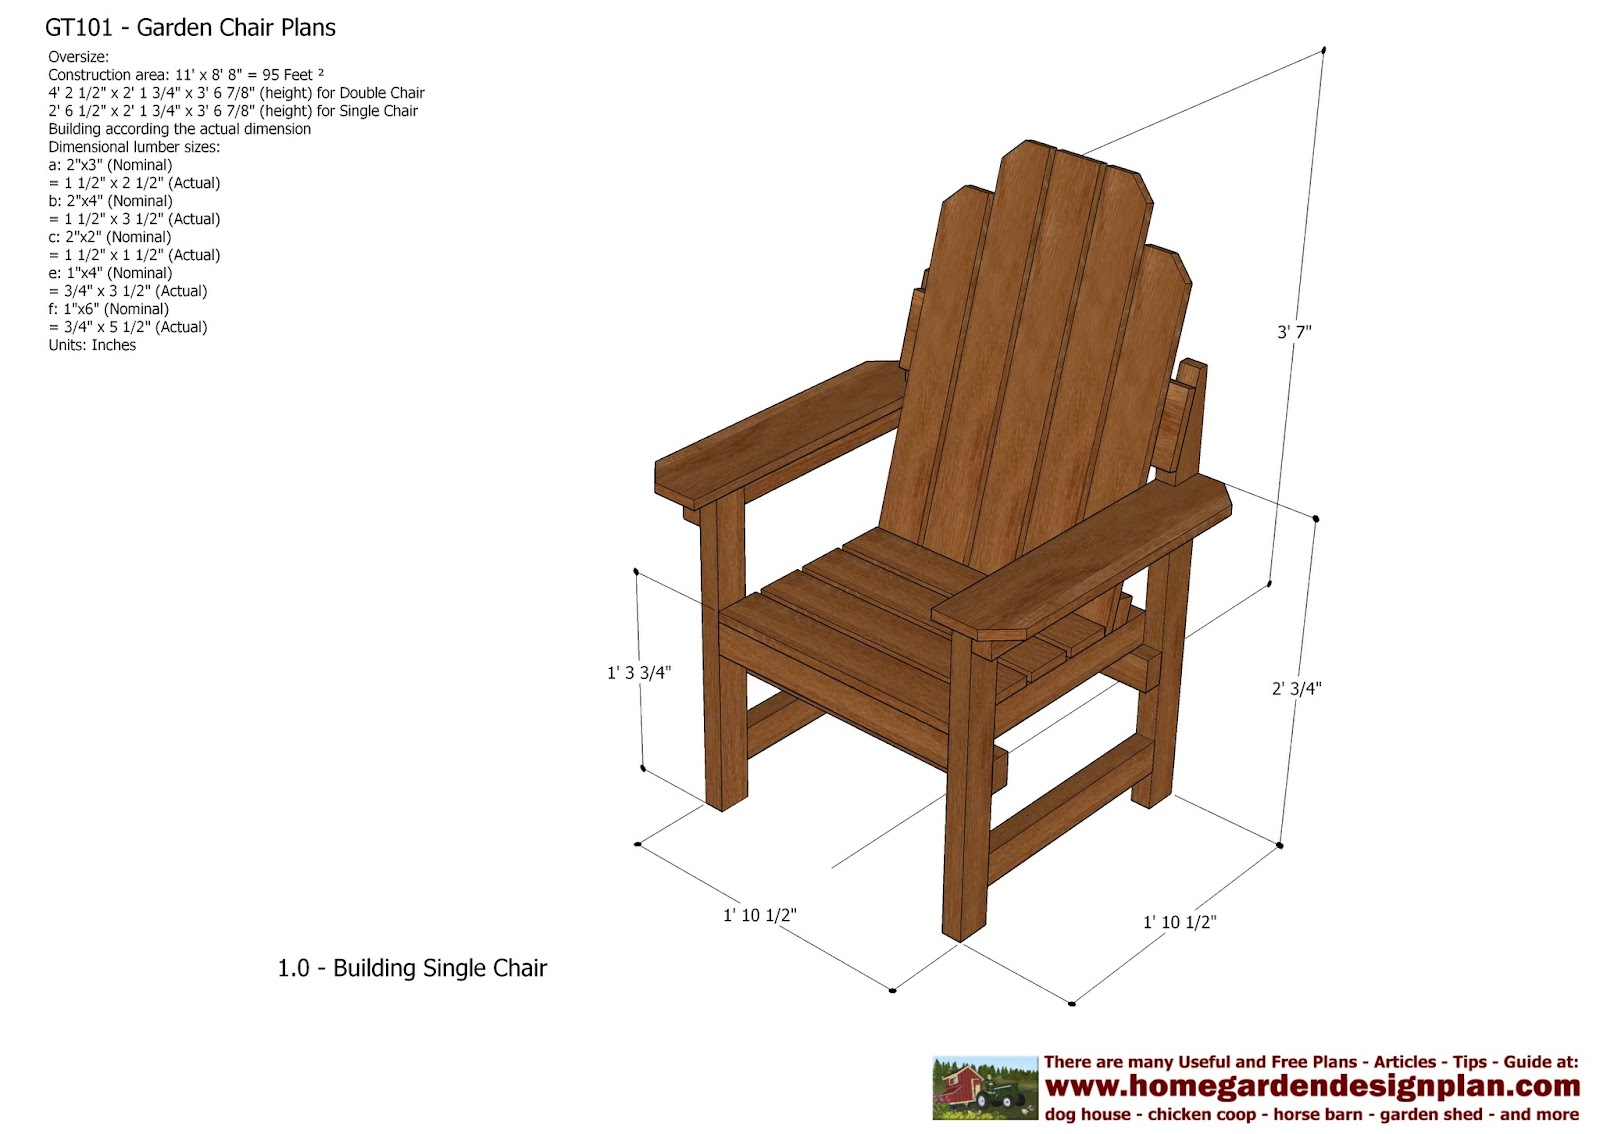 home garden plans: GT101 - Garden Teak Table Plans - Out ...